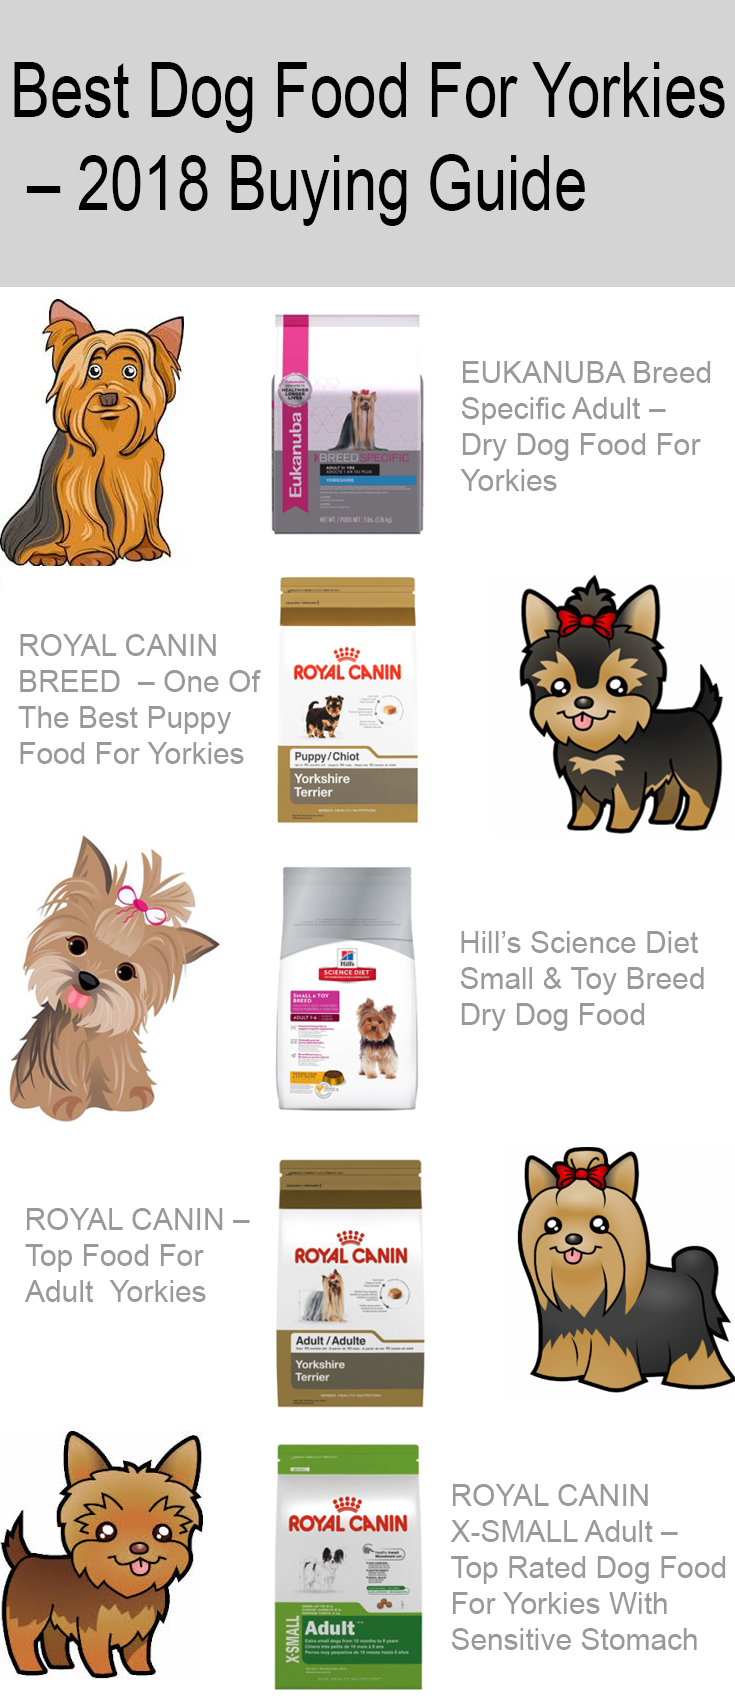 Best Dog Food For Yorkies 2018 Buying Guide Healthy Pawpawlover Dogfood Yorkshire Training Your Dog Dog Training Collar Dog Behavior Training